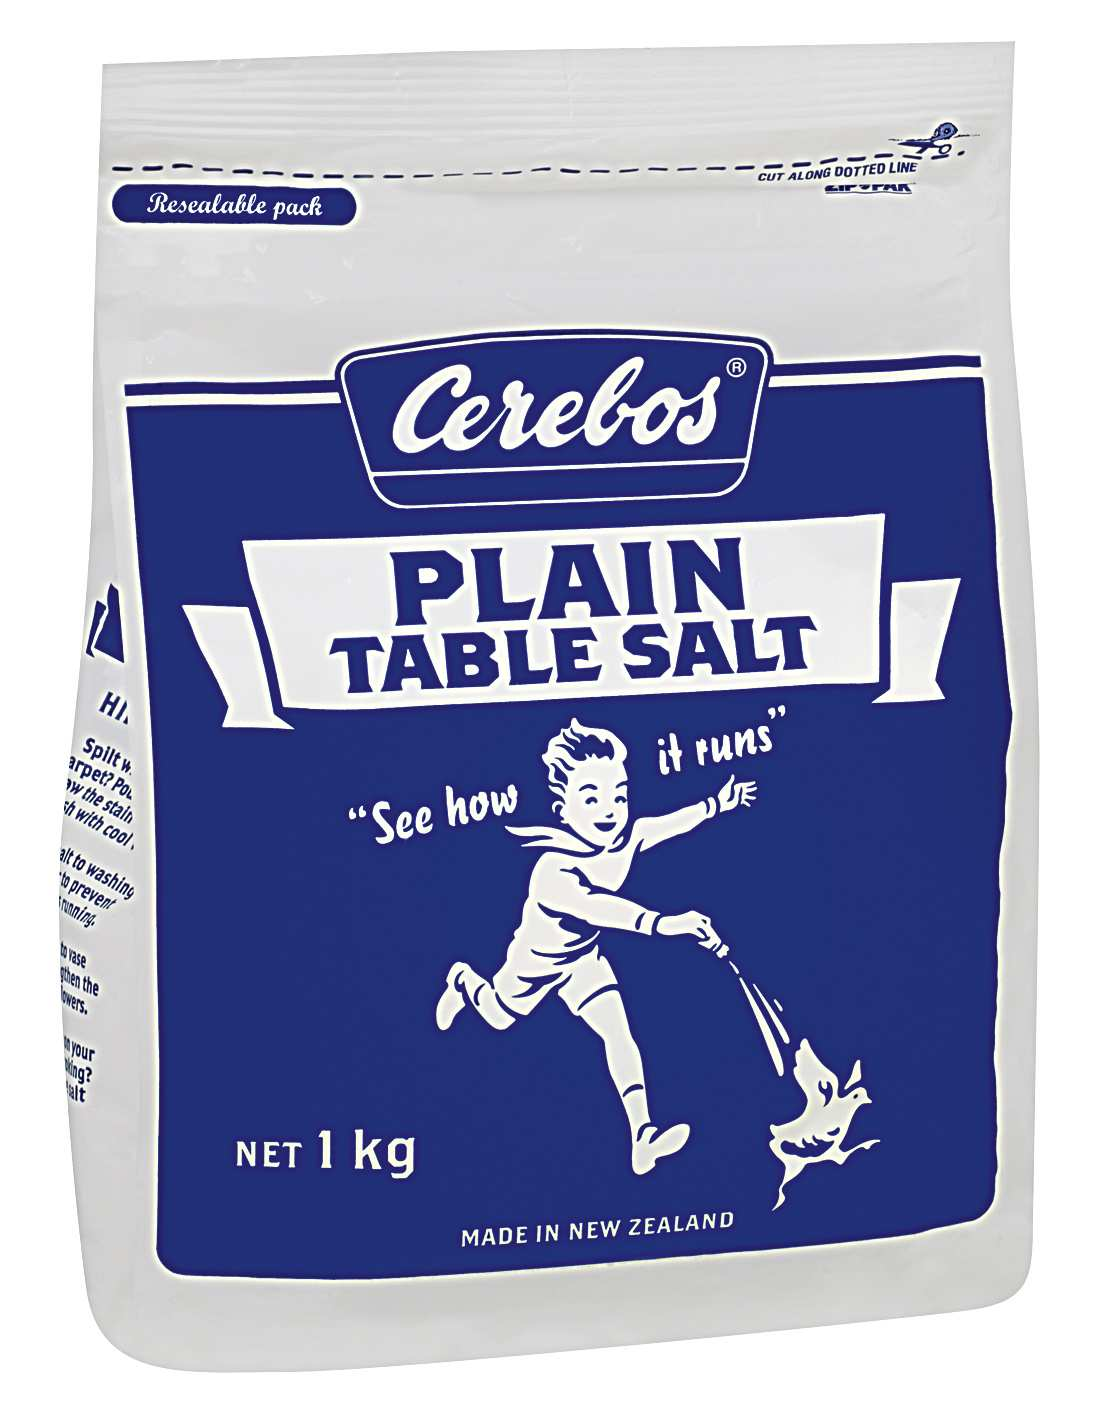 1kg Cerebos Plain Table Salt image